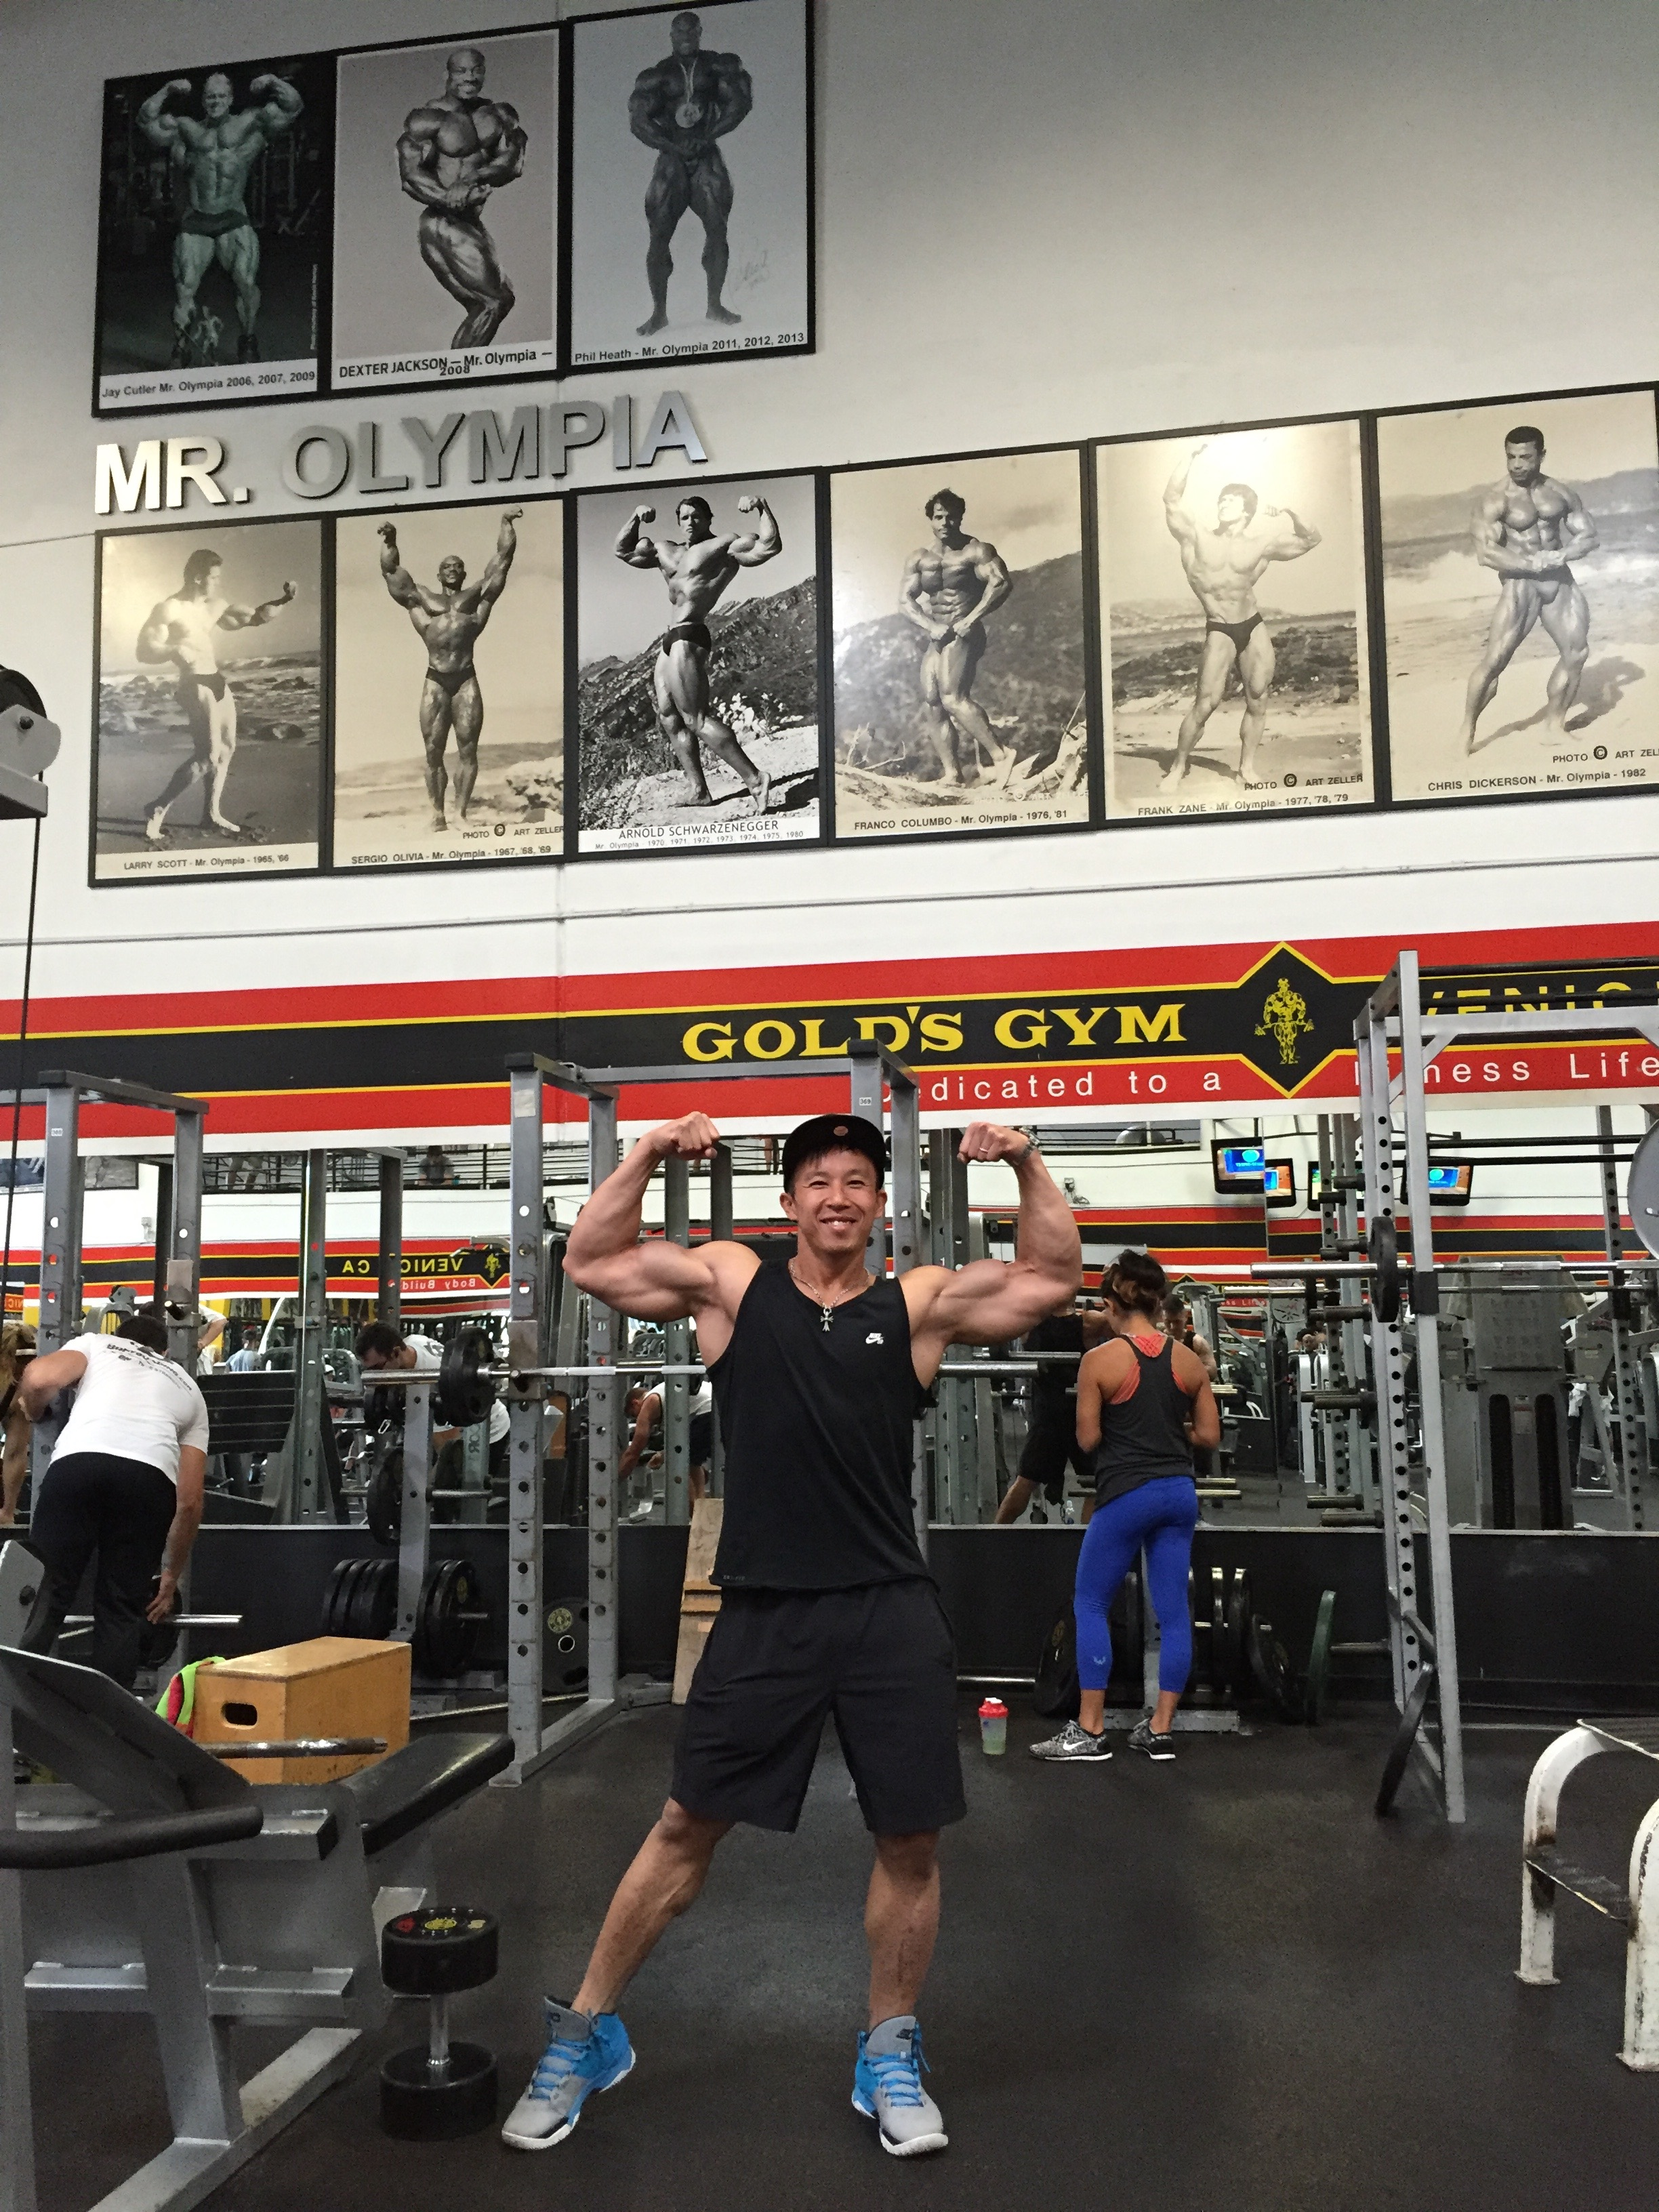 MECCA  of Bodybuilding Golds Gym